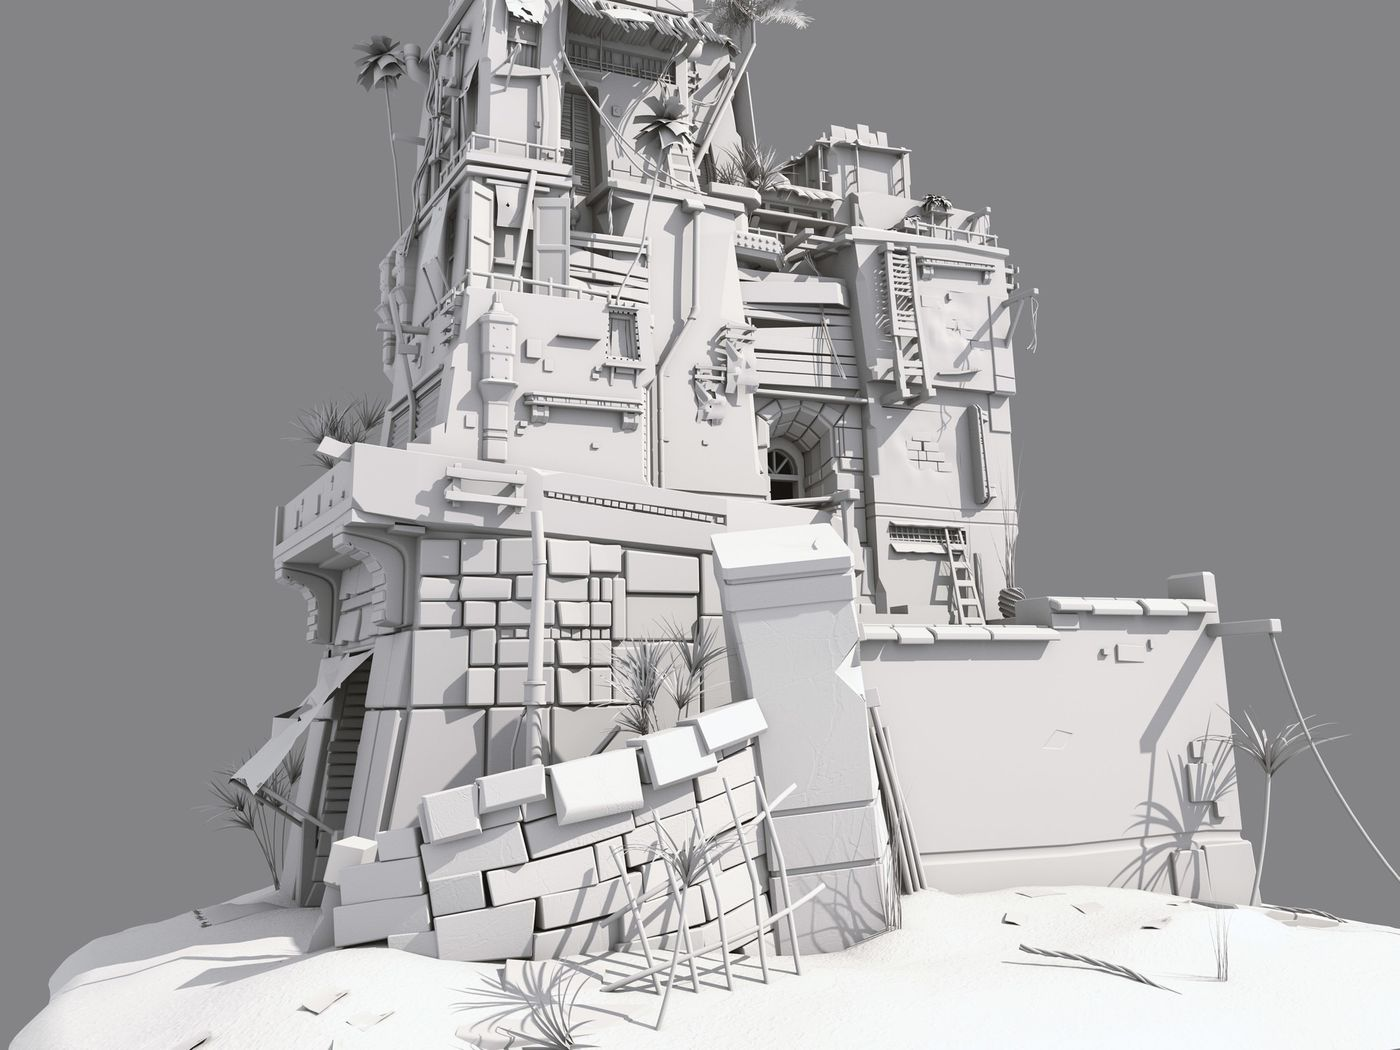 Modeling Experiment #1